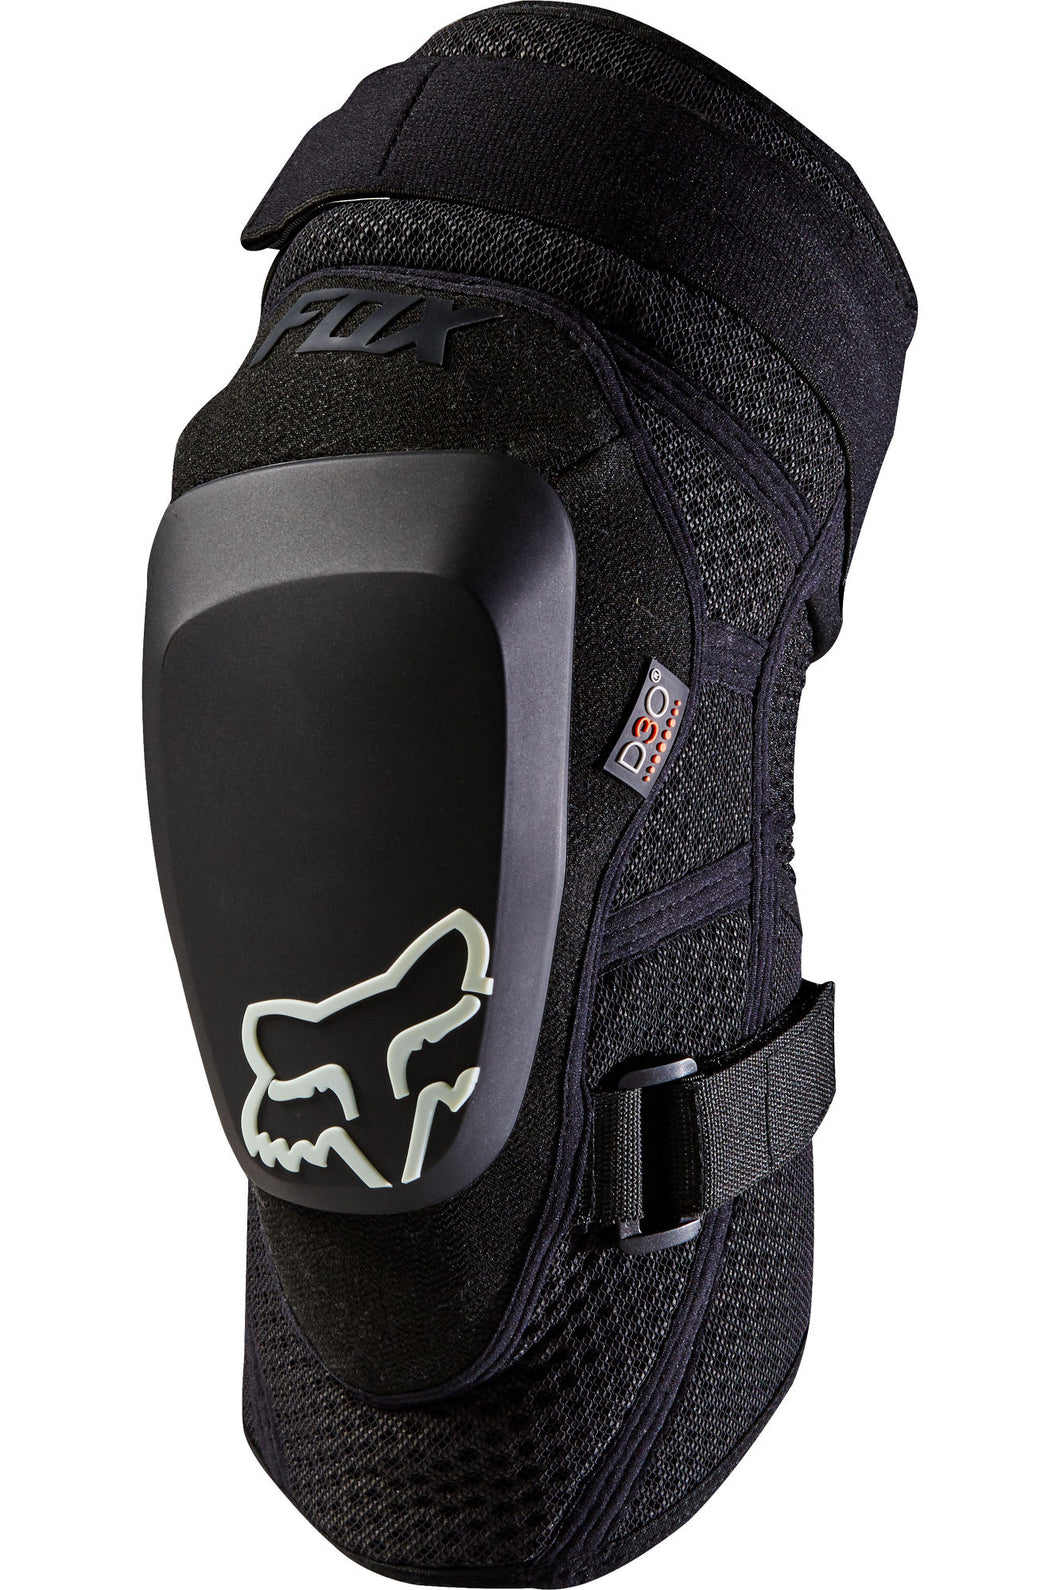 Launch Pro D3O® Knee Guard